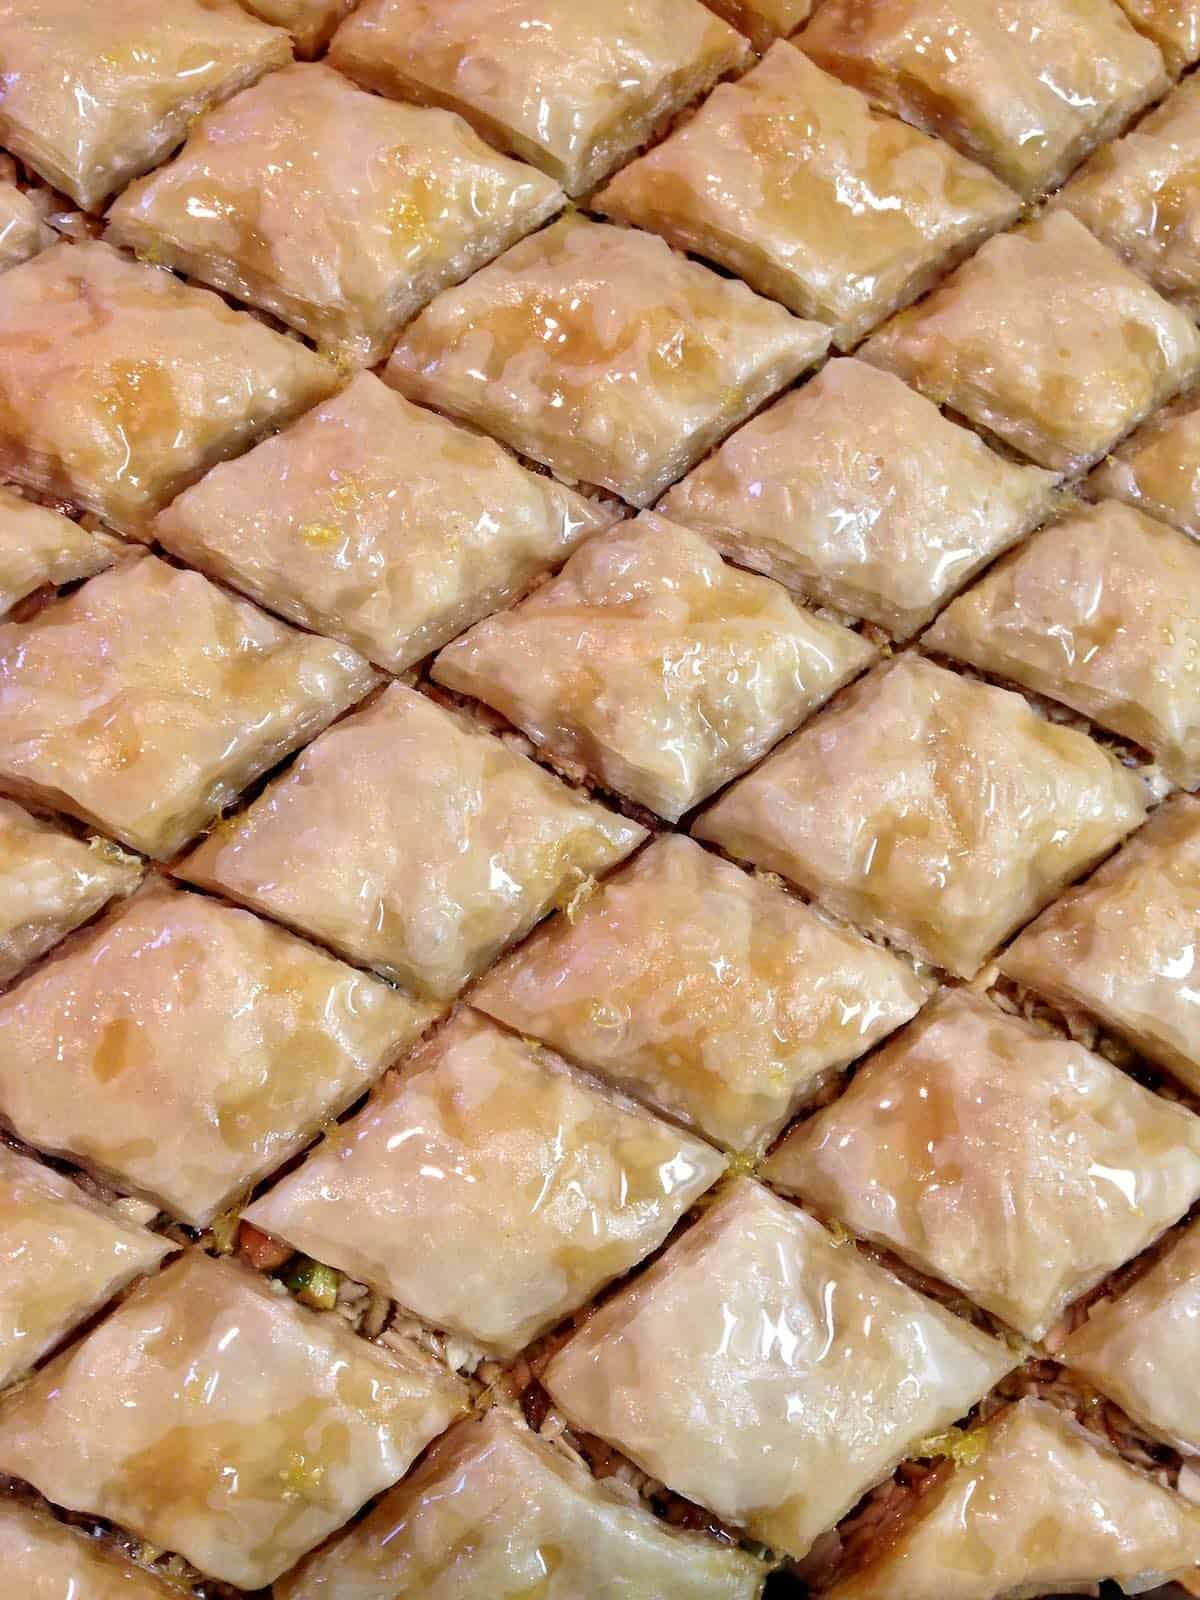 no need to do a honey search for baklava here